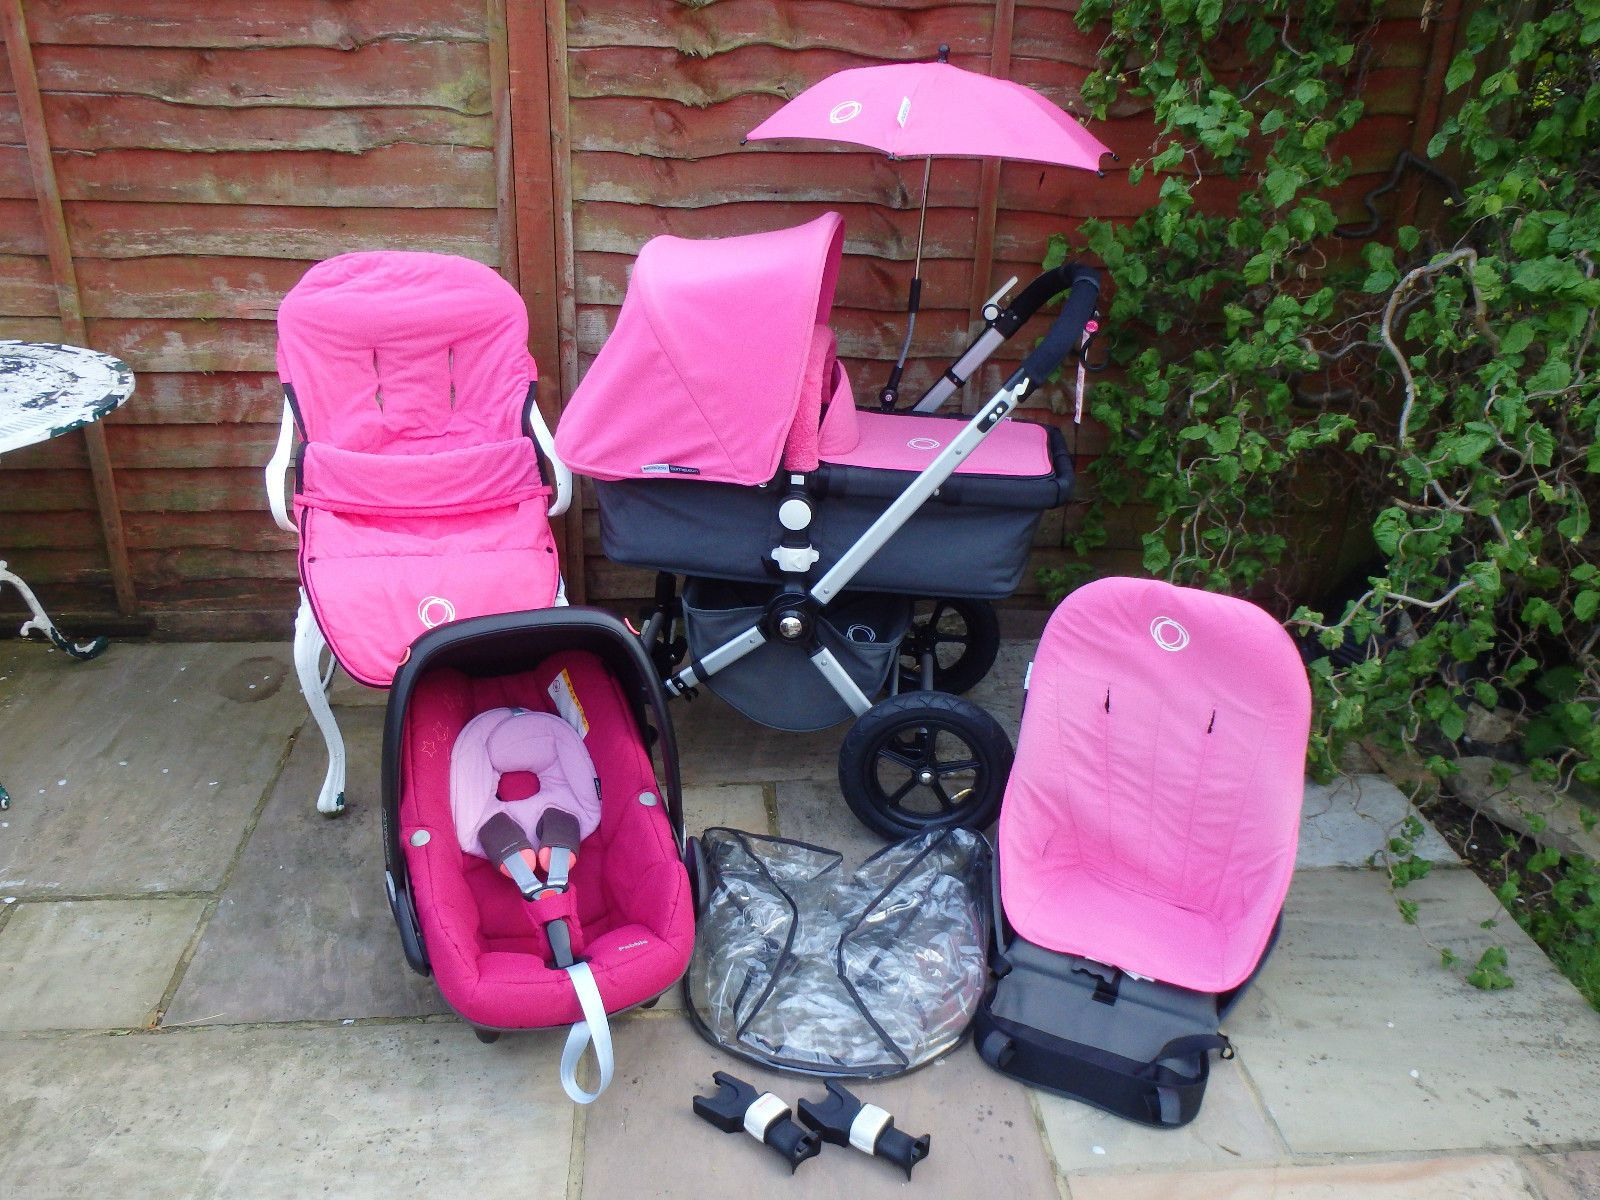 Bugaboo Cameleon 3 Maximum Weight Bugaboo Cameleon 1 Full Travel System In Hot Pink Ebay